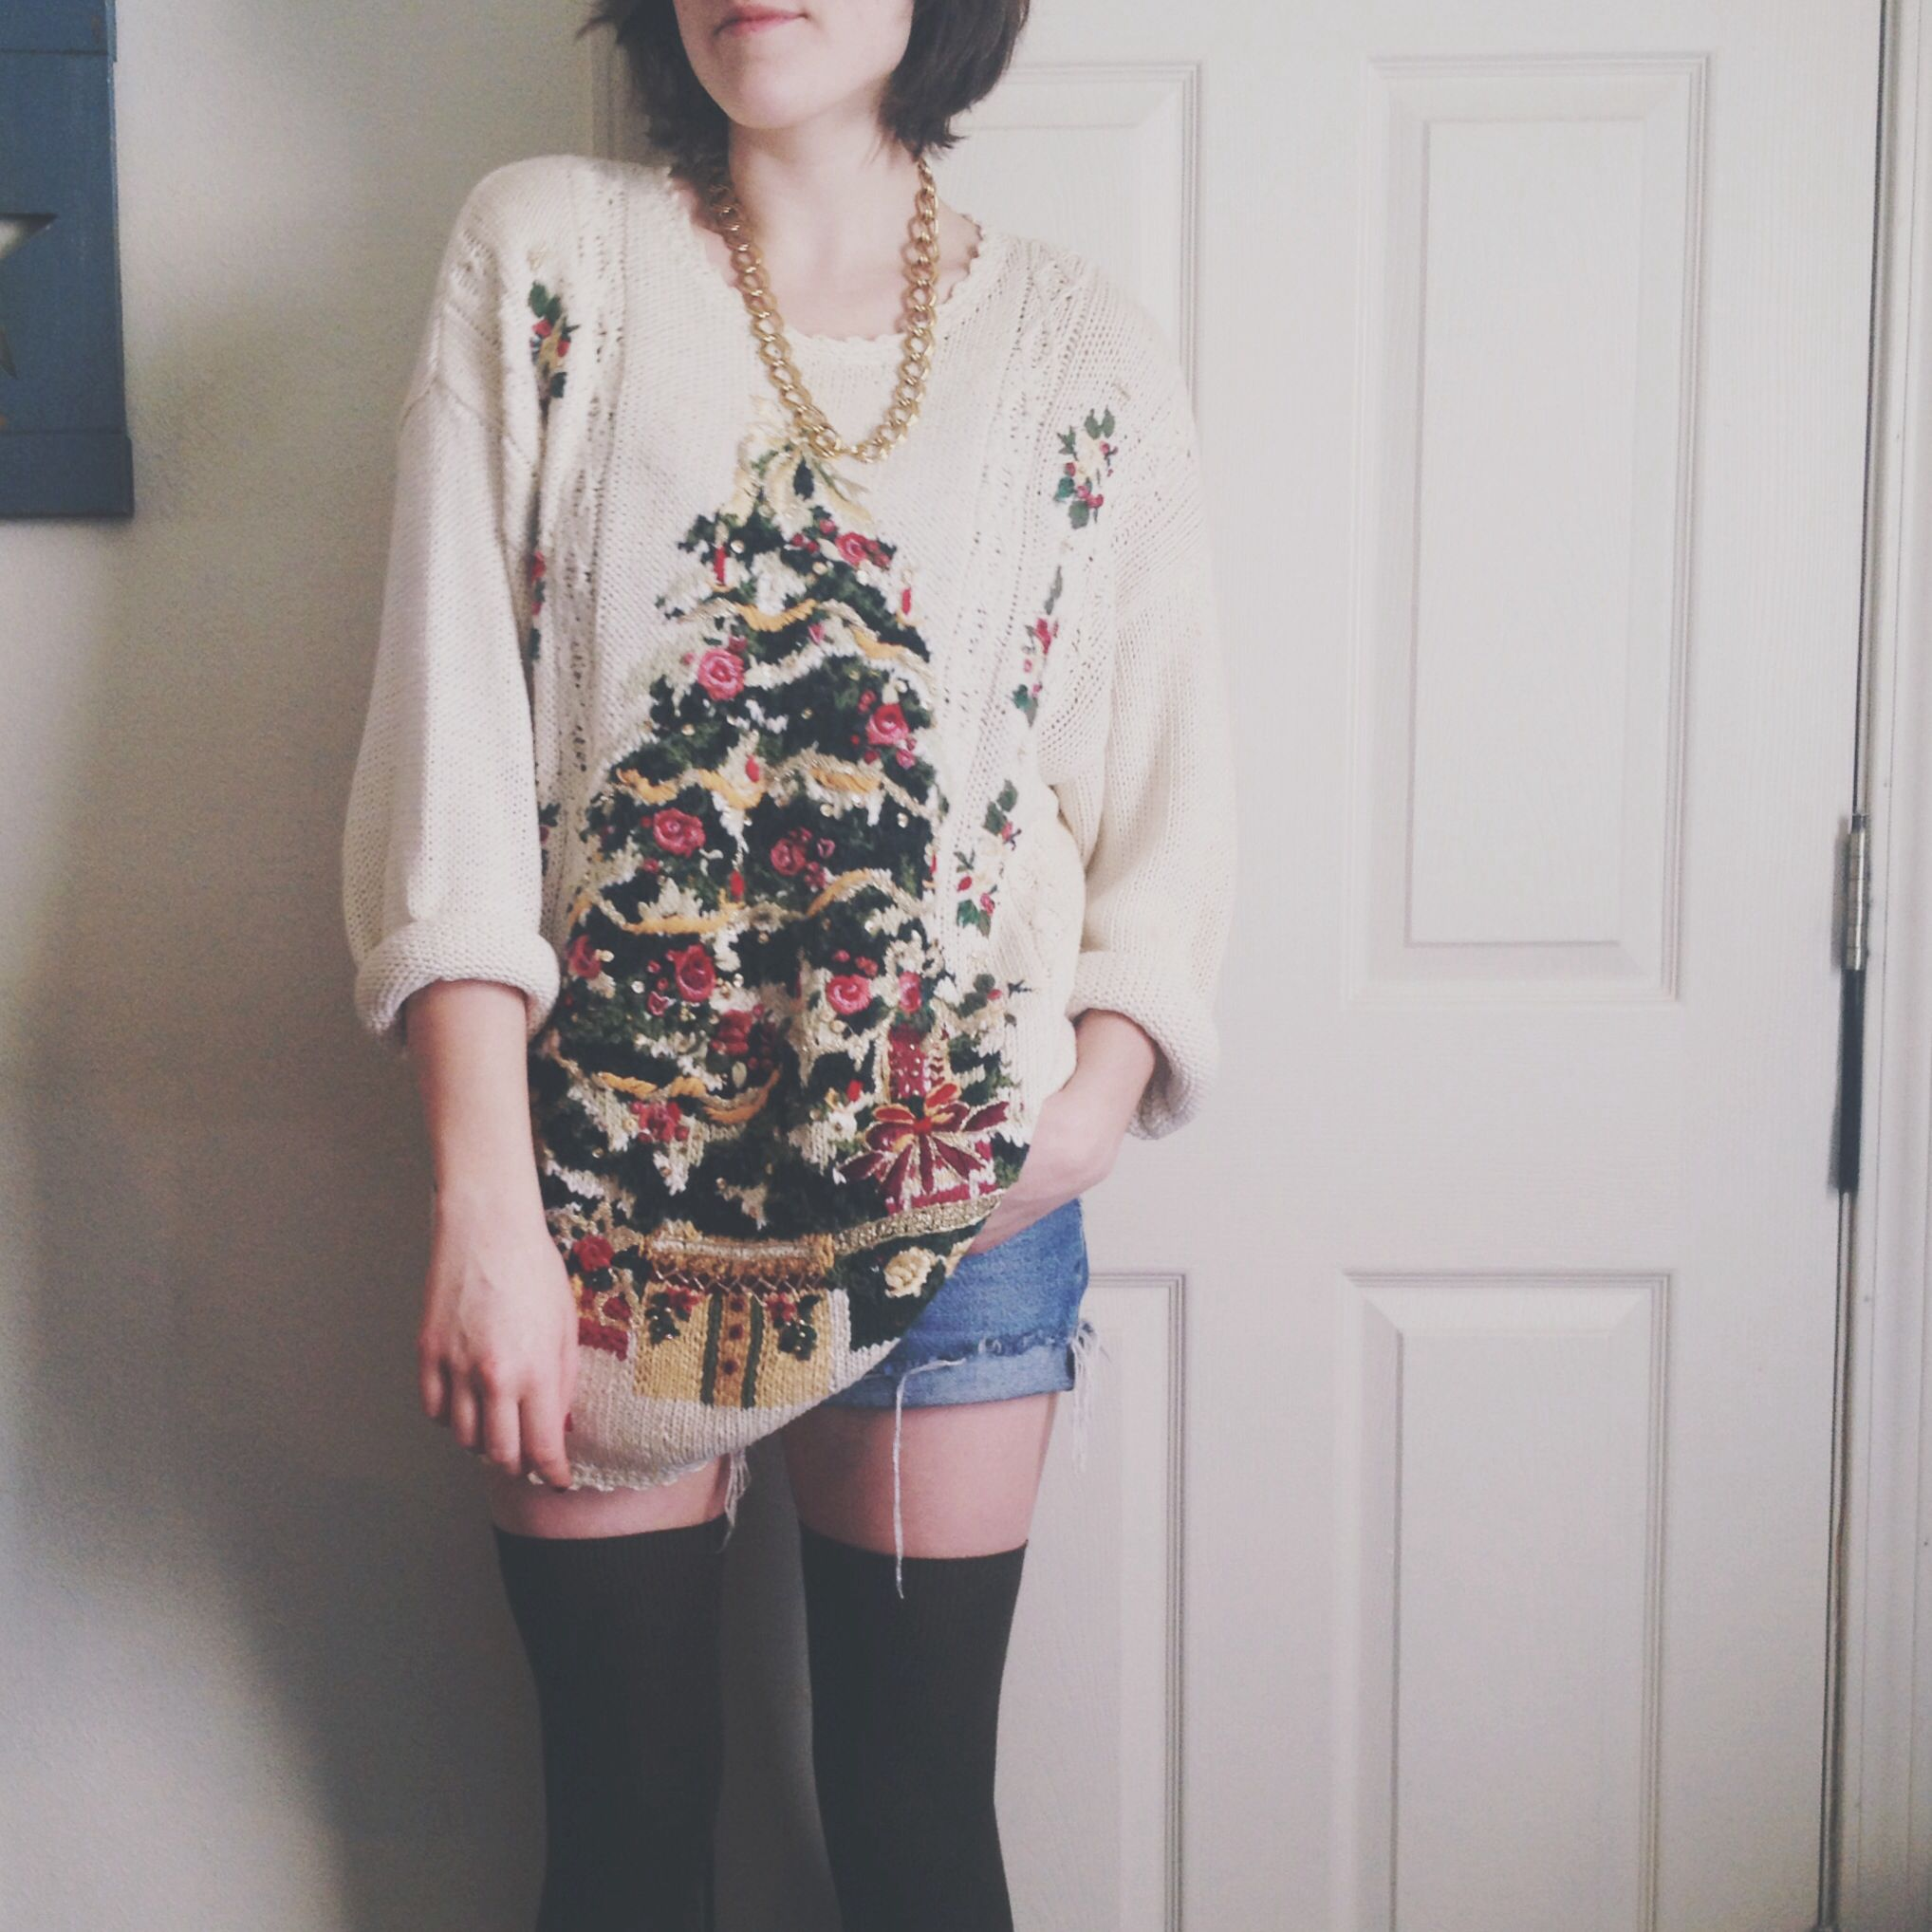 Christmas sweater perfection.